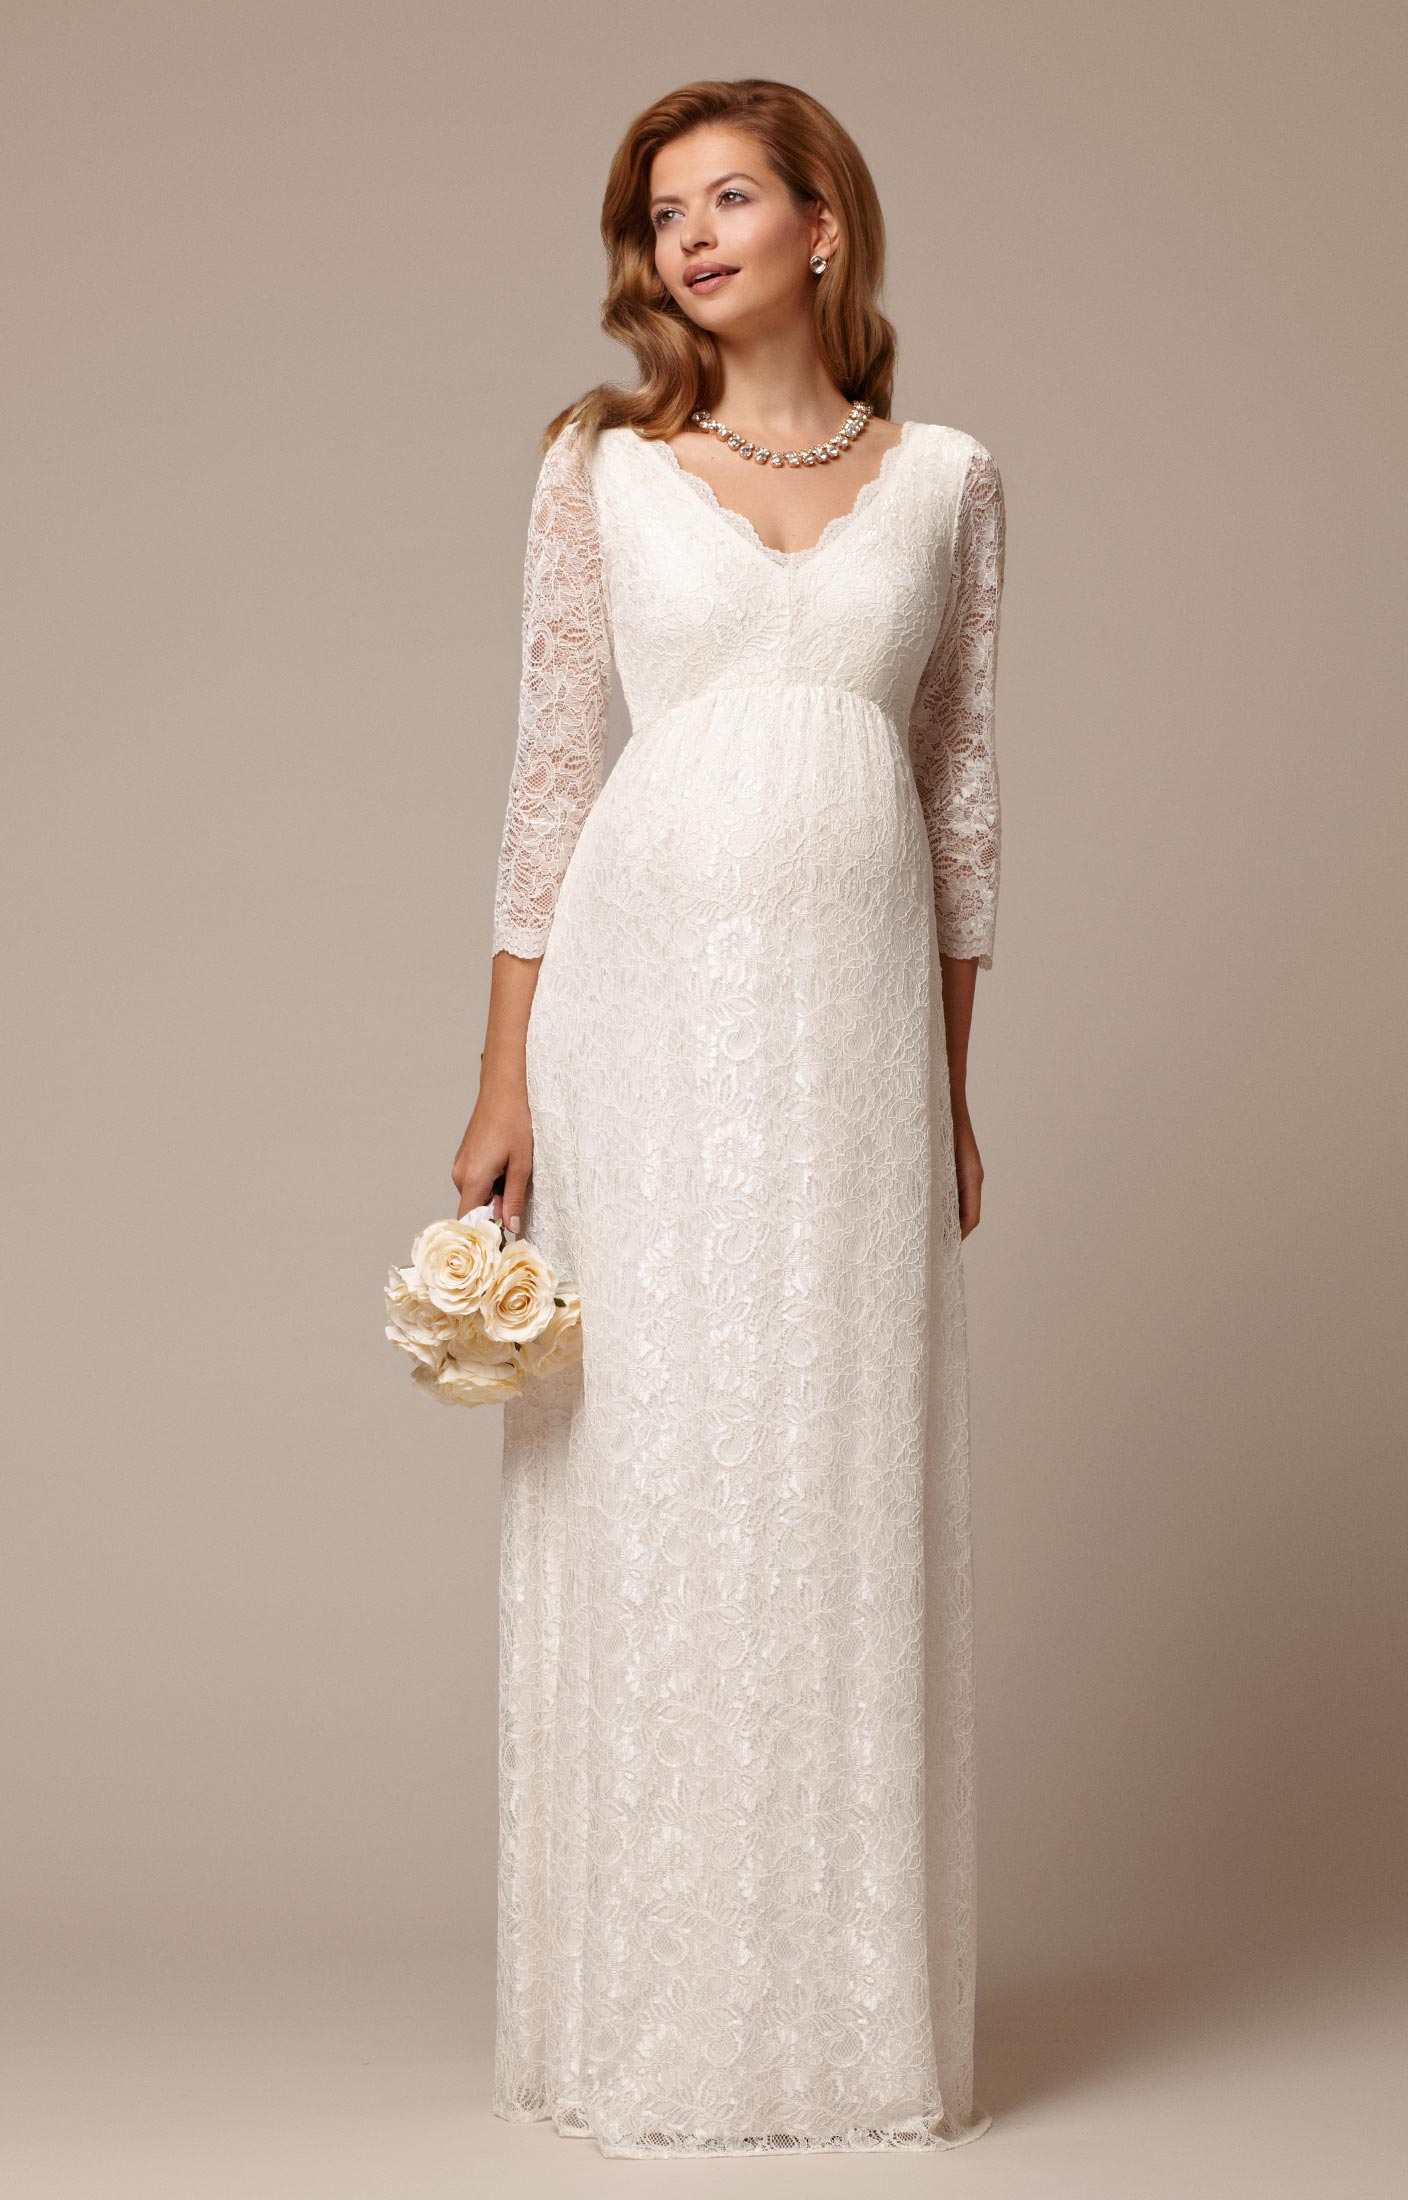 Lace Maternity Wedding Dress